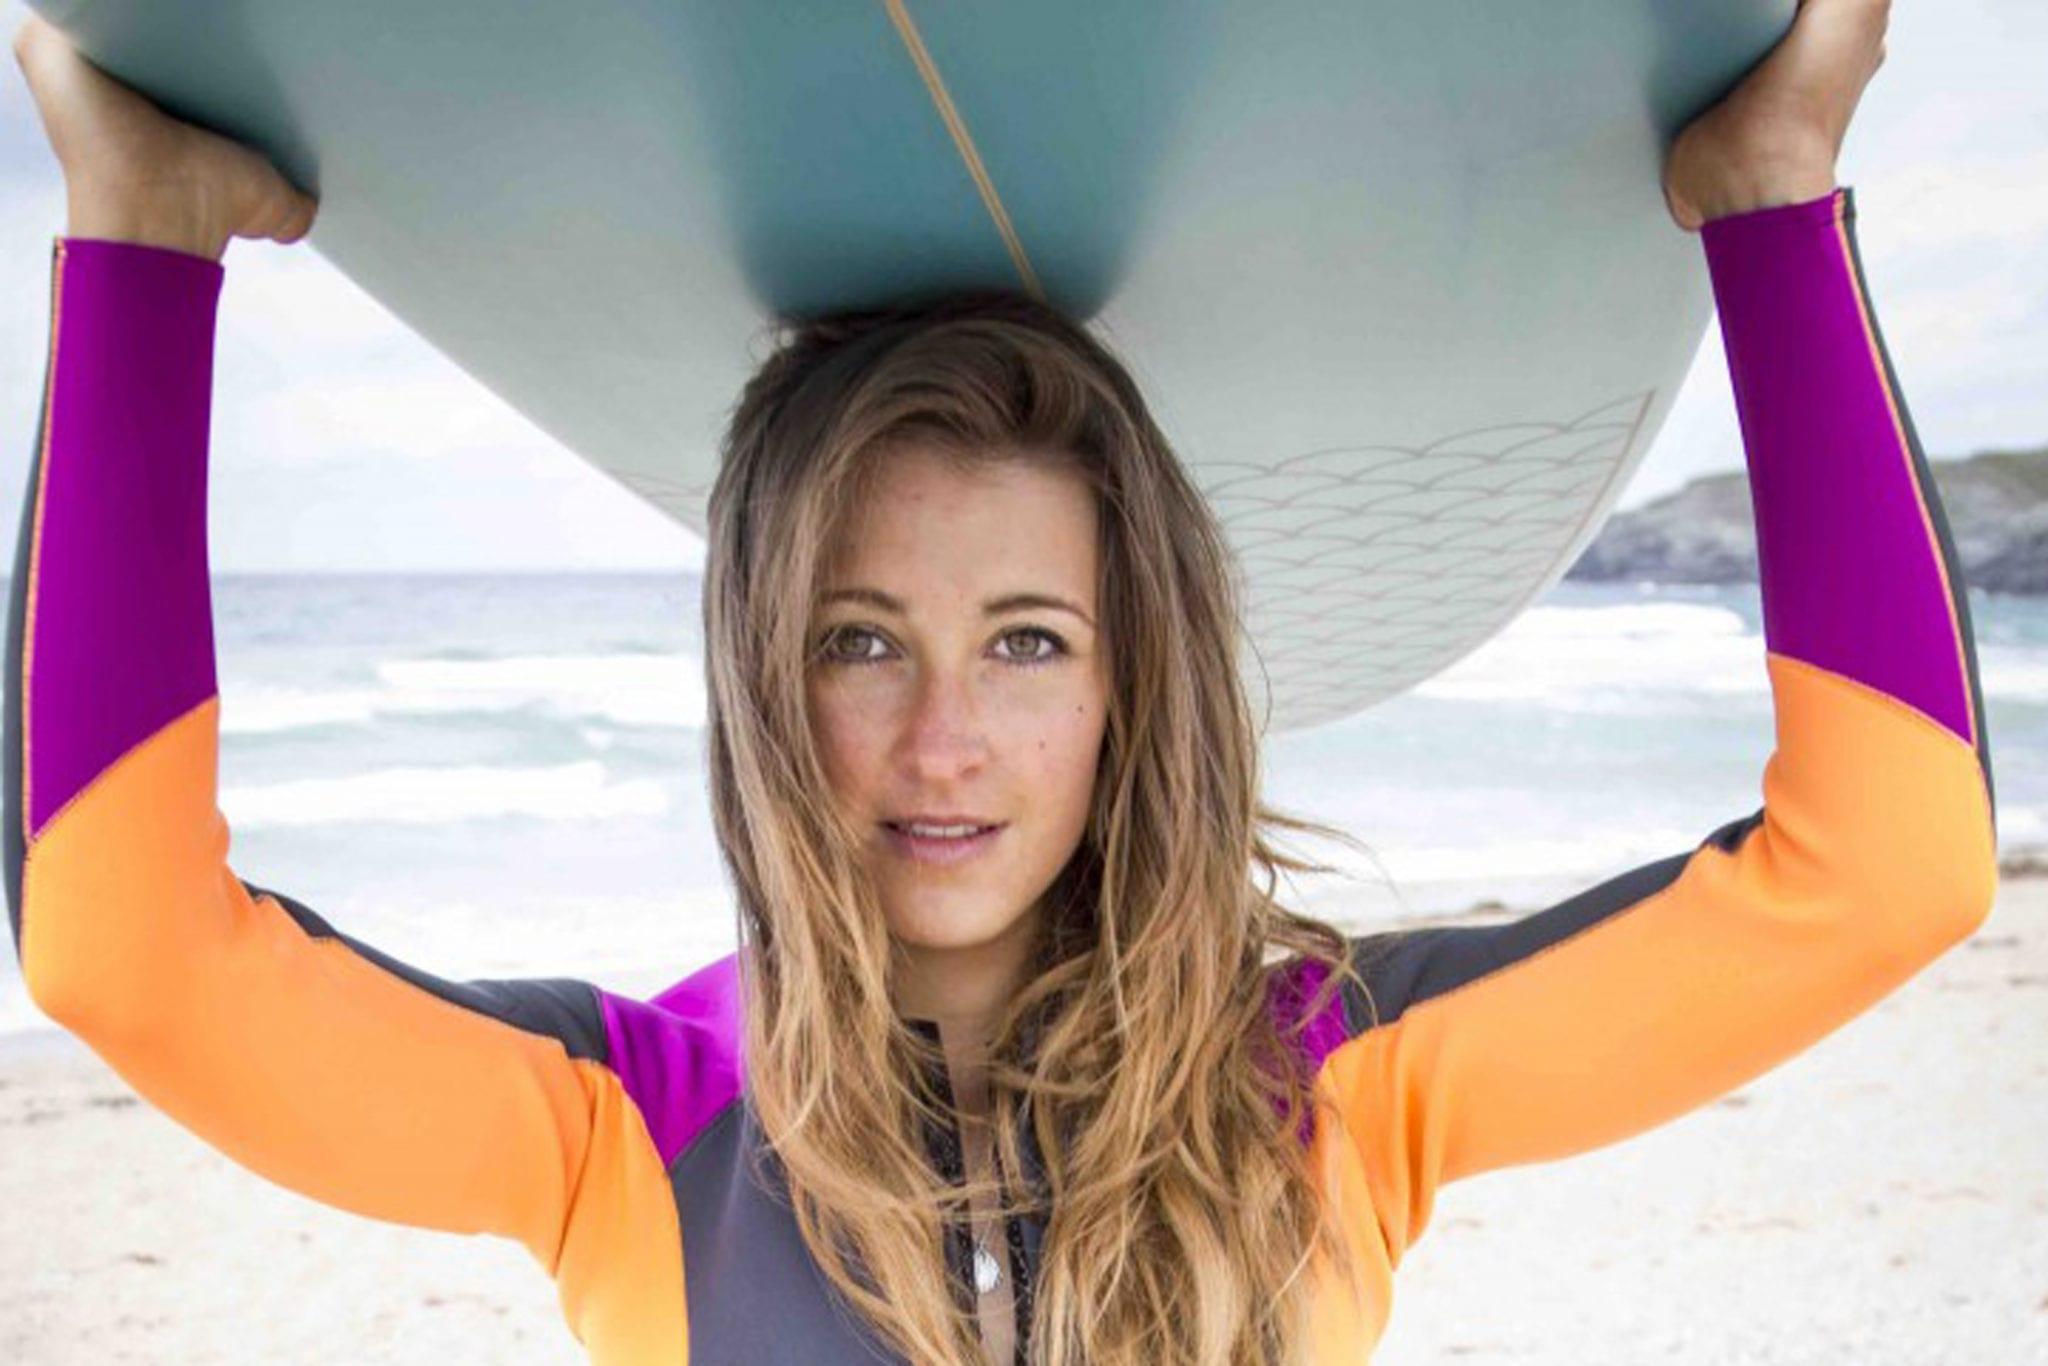 Surfing: how the pro's get ocean-fit